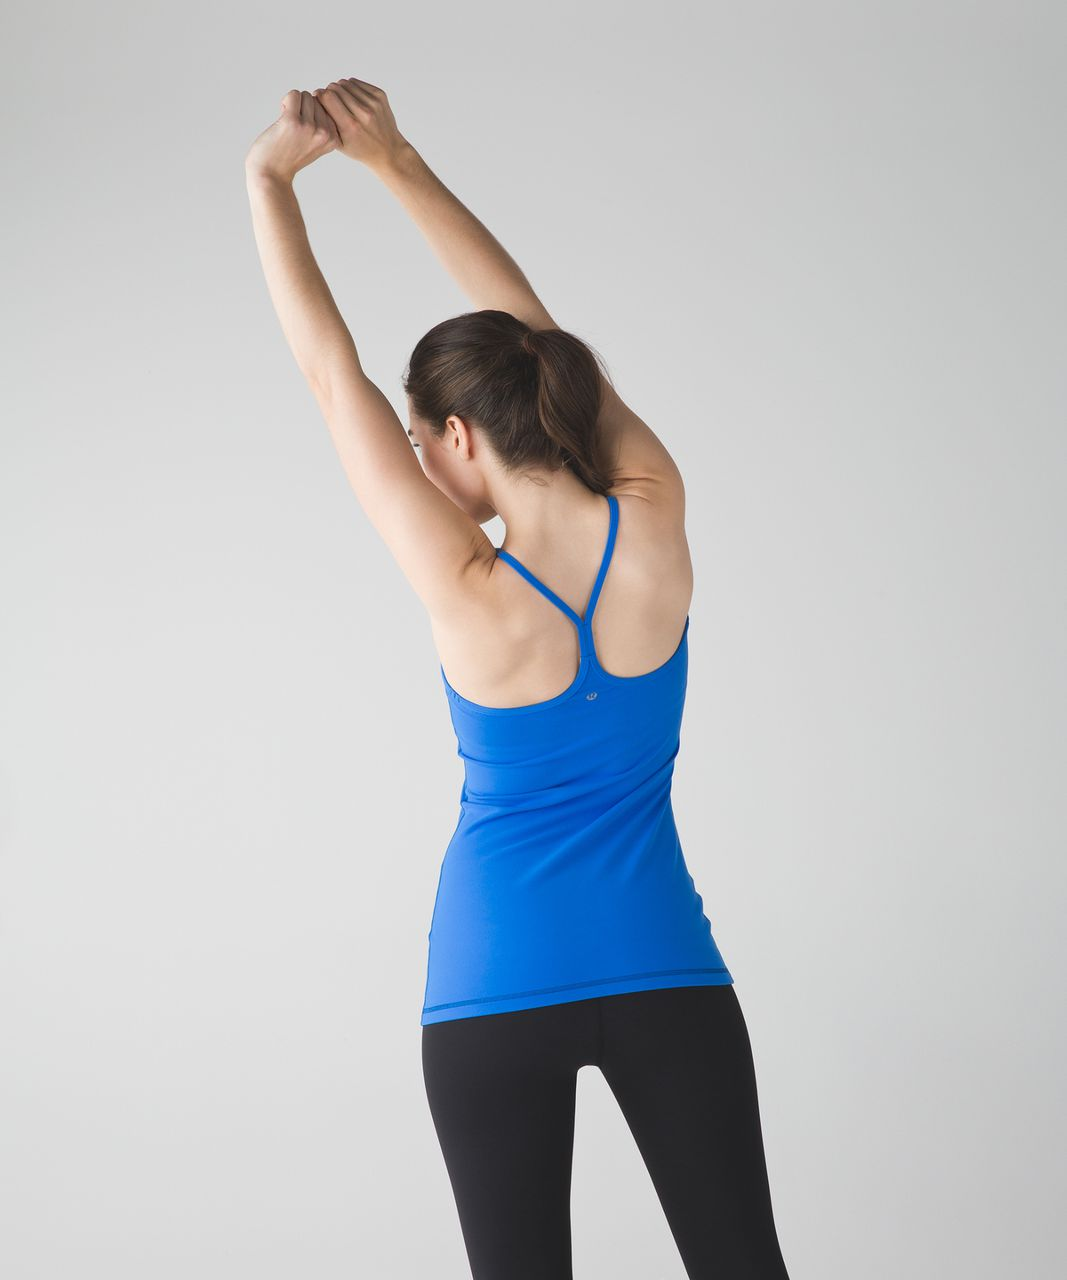 Lululemon Power Y Tank (Luon) - Pipe Dream Blue